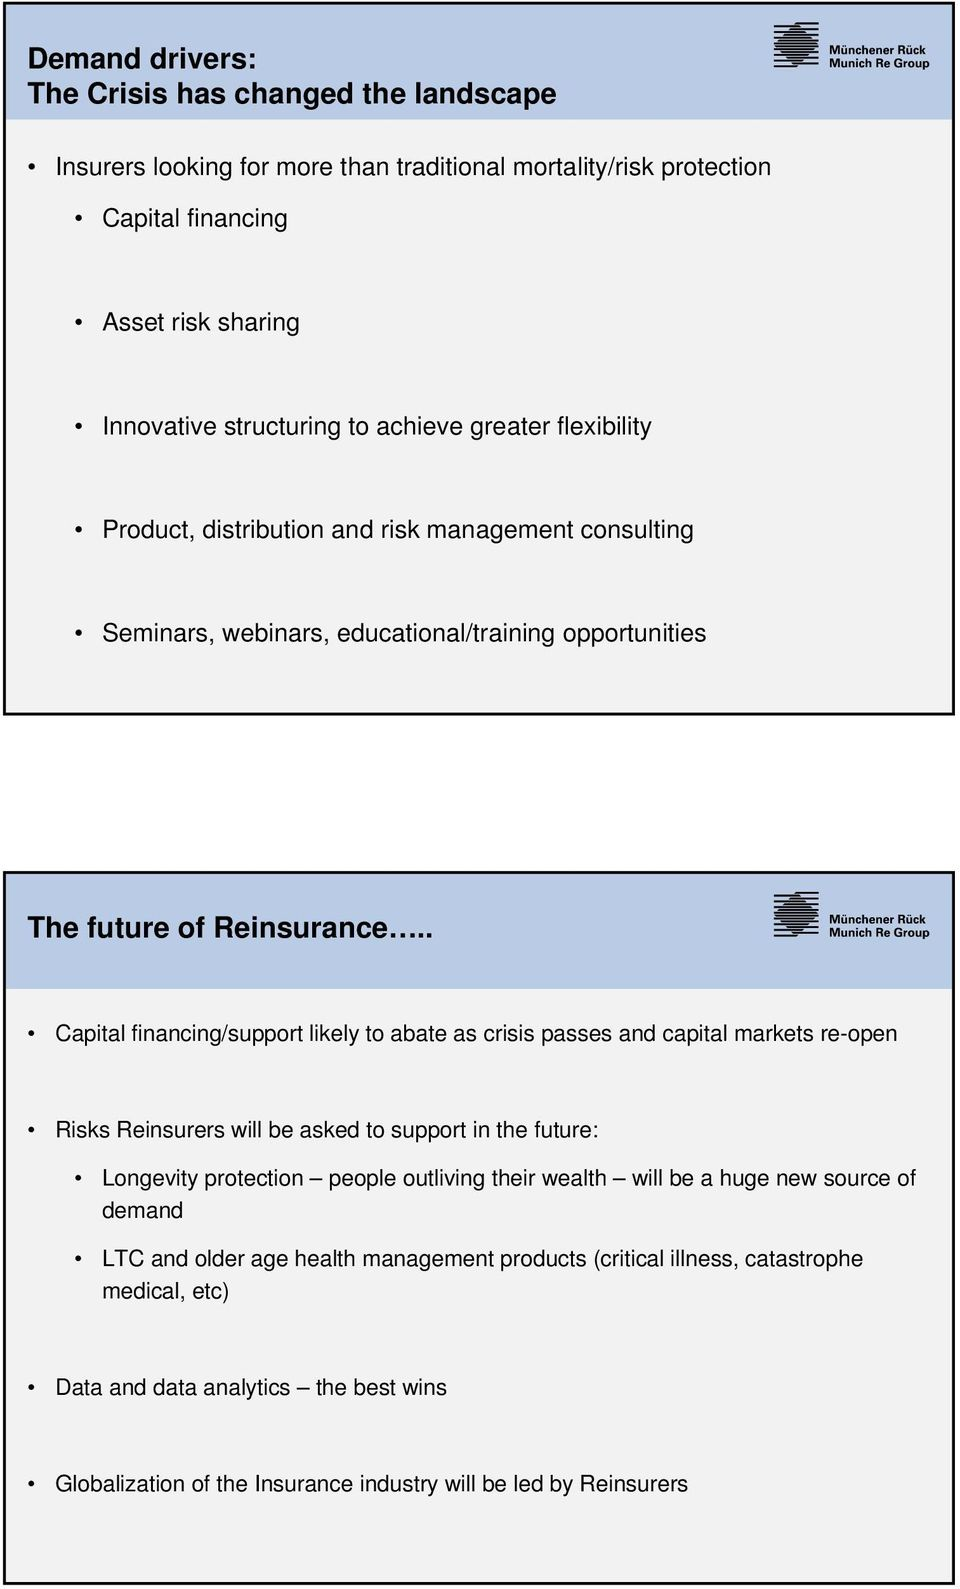 . Capital financing/support likely to abate as crisis passes and capital markets re-open Risks Reinsurers will be asked to support in the future: Longevity protection people outliving their